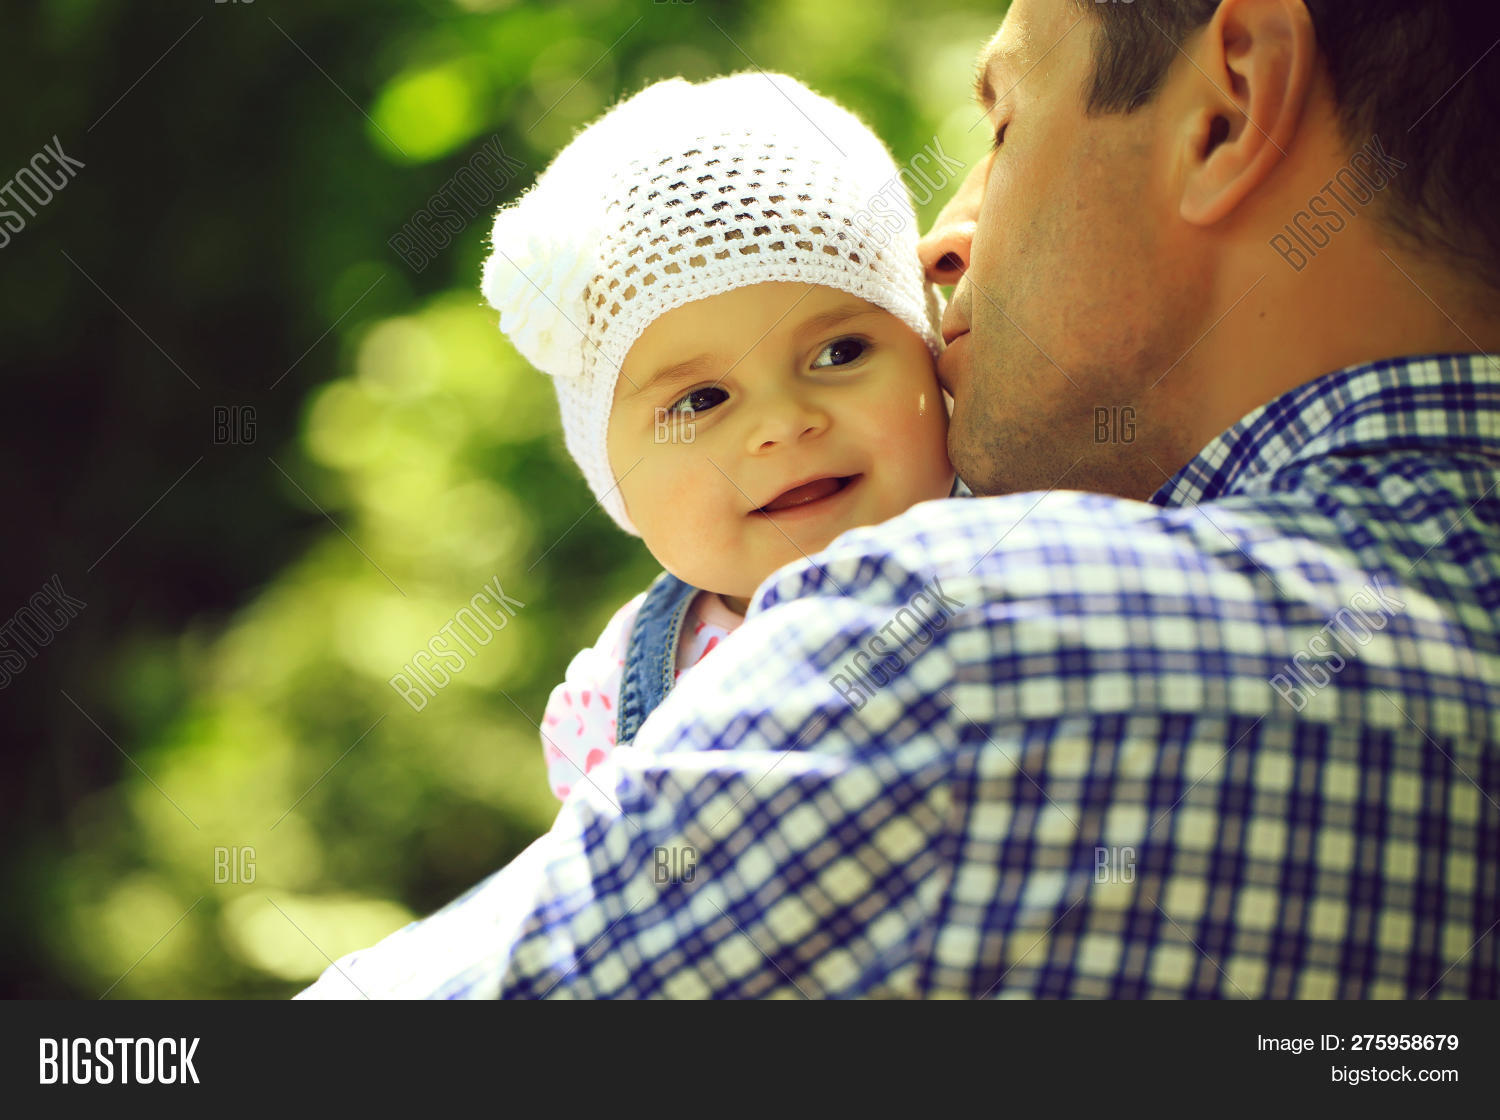 f5e688e4d21 ... small daughter baby girl cute hazel-eyed kid tiny little child wearing  white flower beanie hat outdoor on sunny summer day on blurred green  background